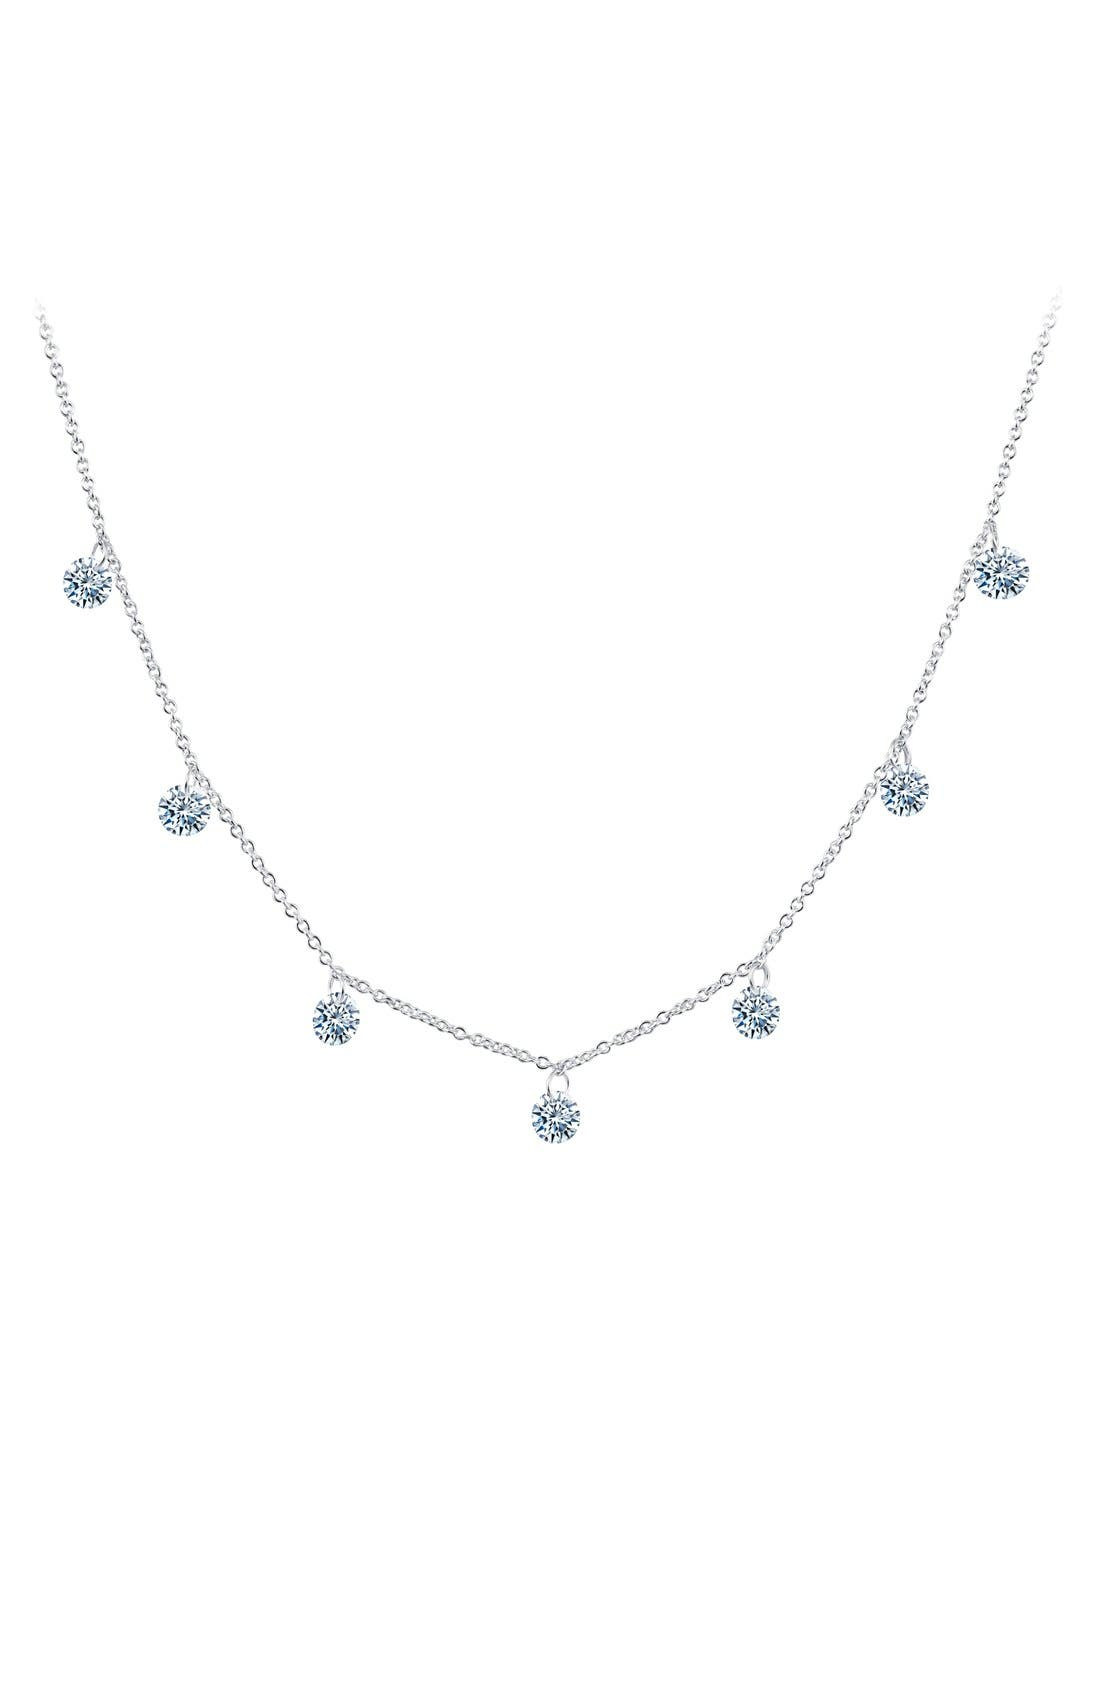 Lassaire In Motion Frameless Raindrop Necklace,                             Main thumbnail 1, color,                             Silver